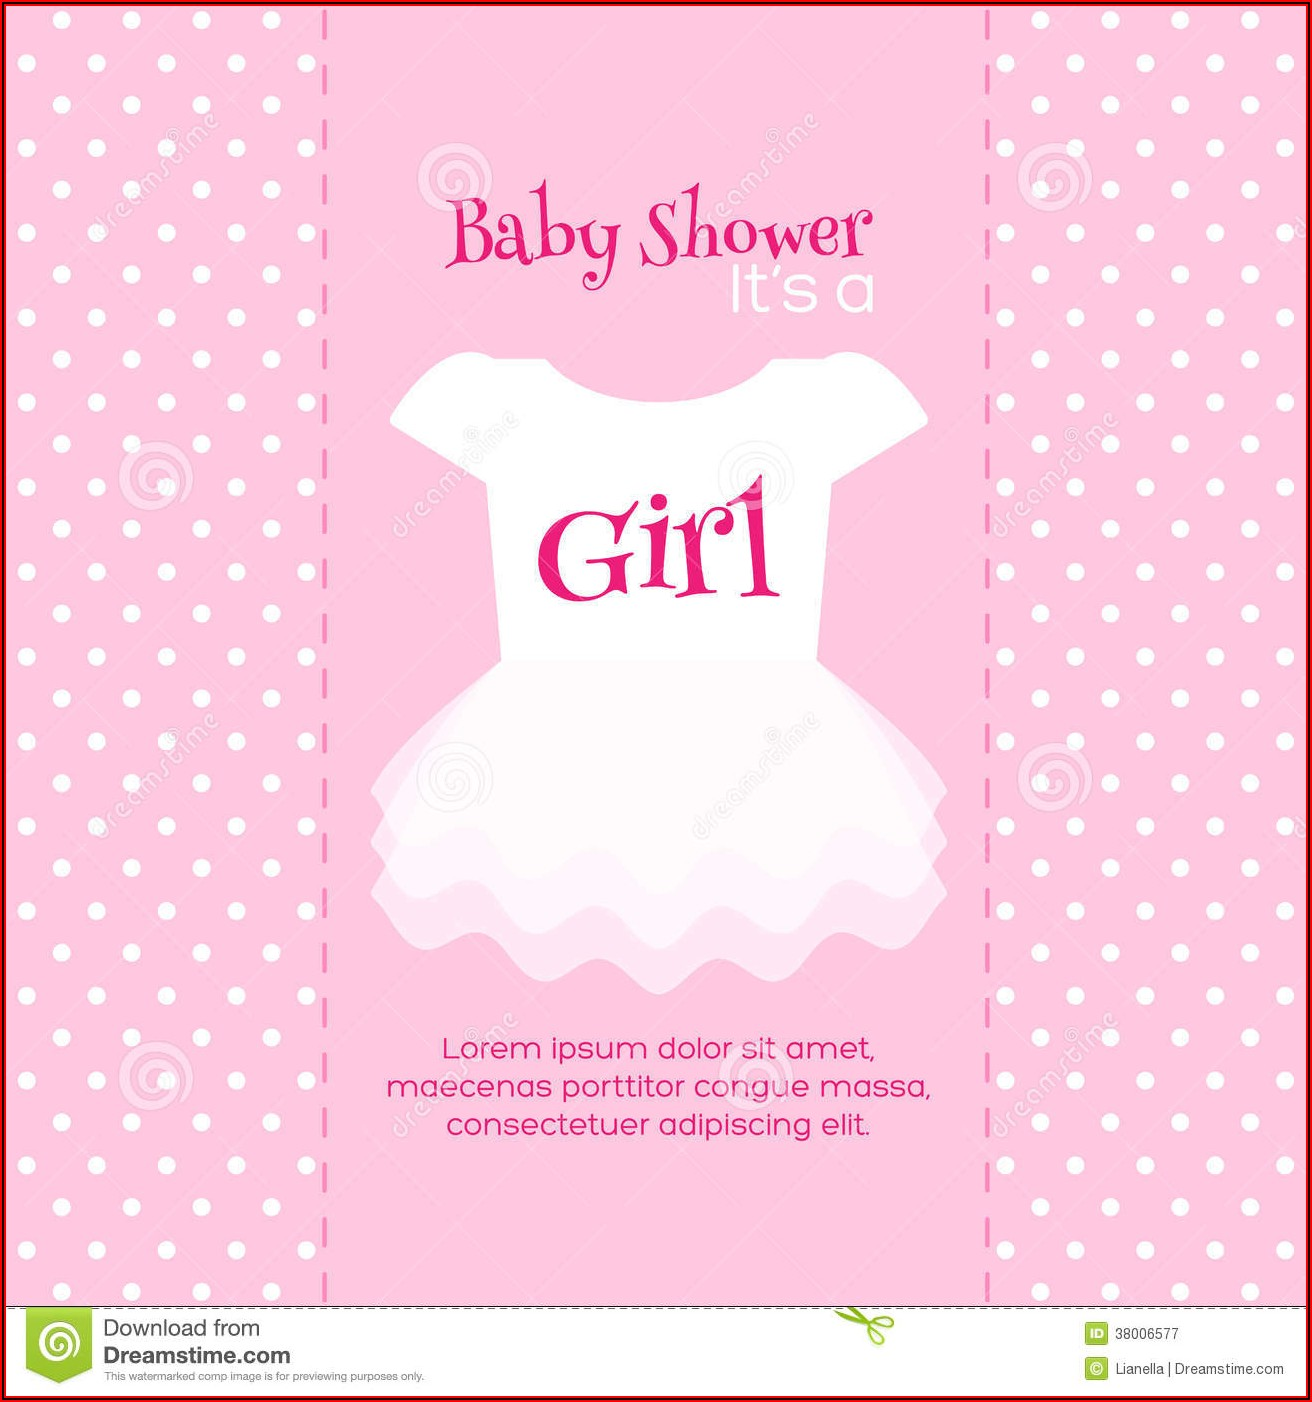 Free Printable Baby Shower Invitation Templates For A Girl